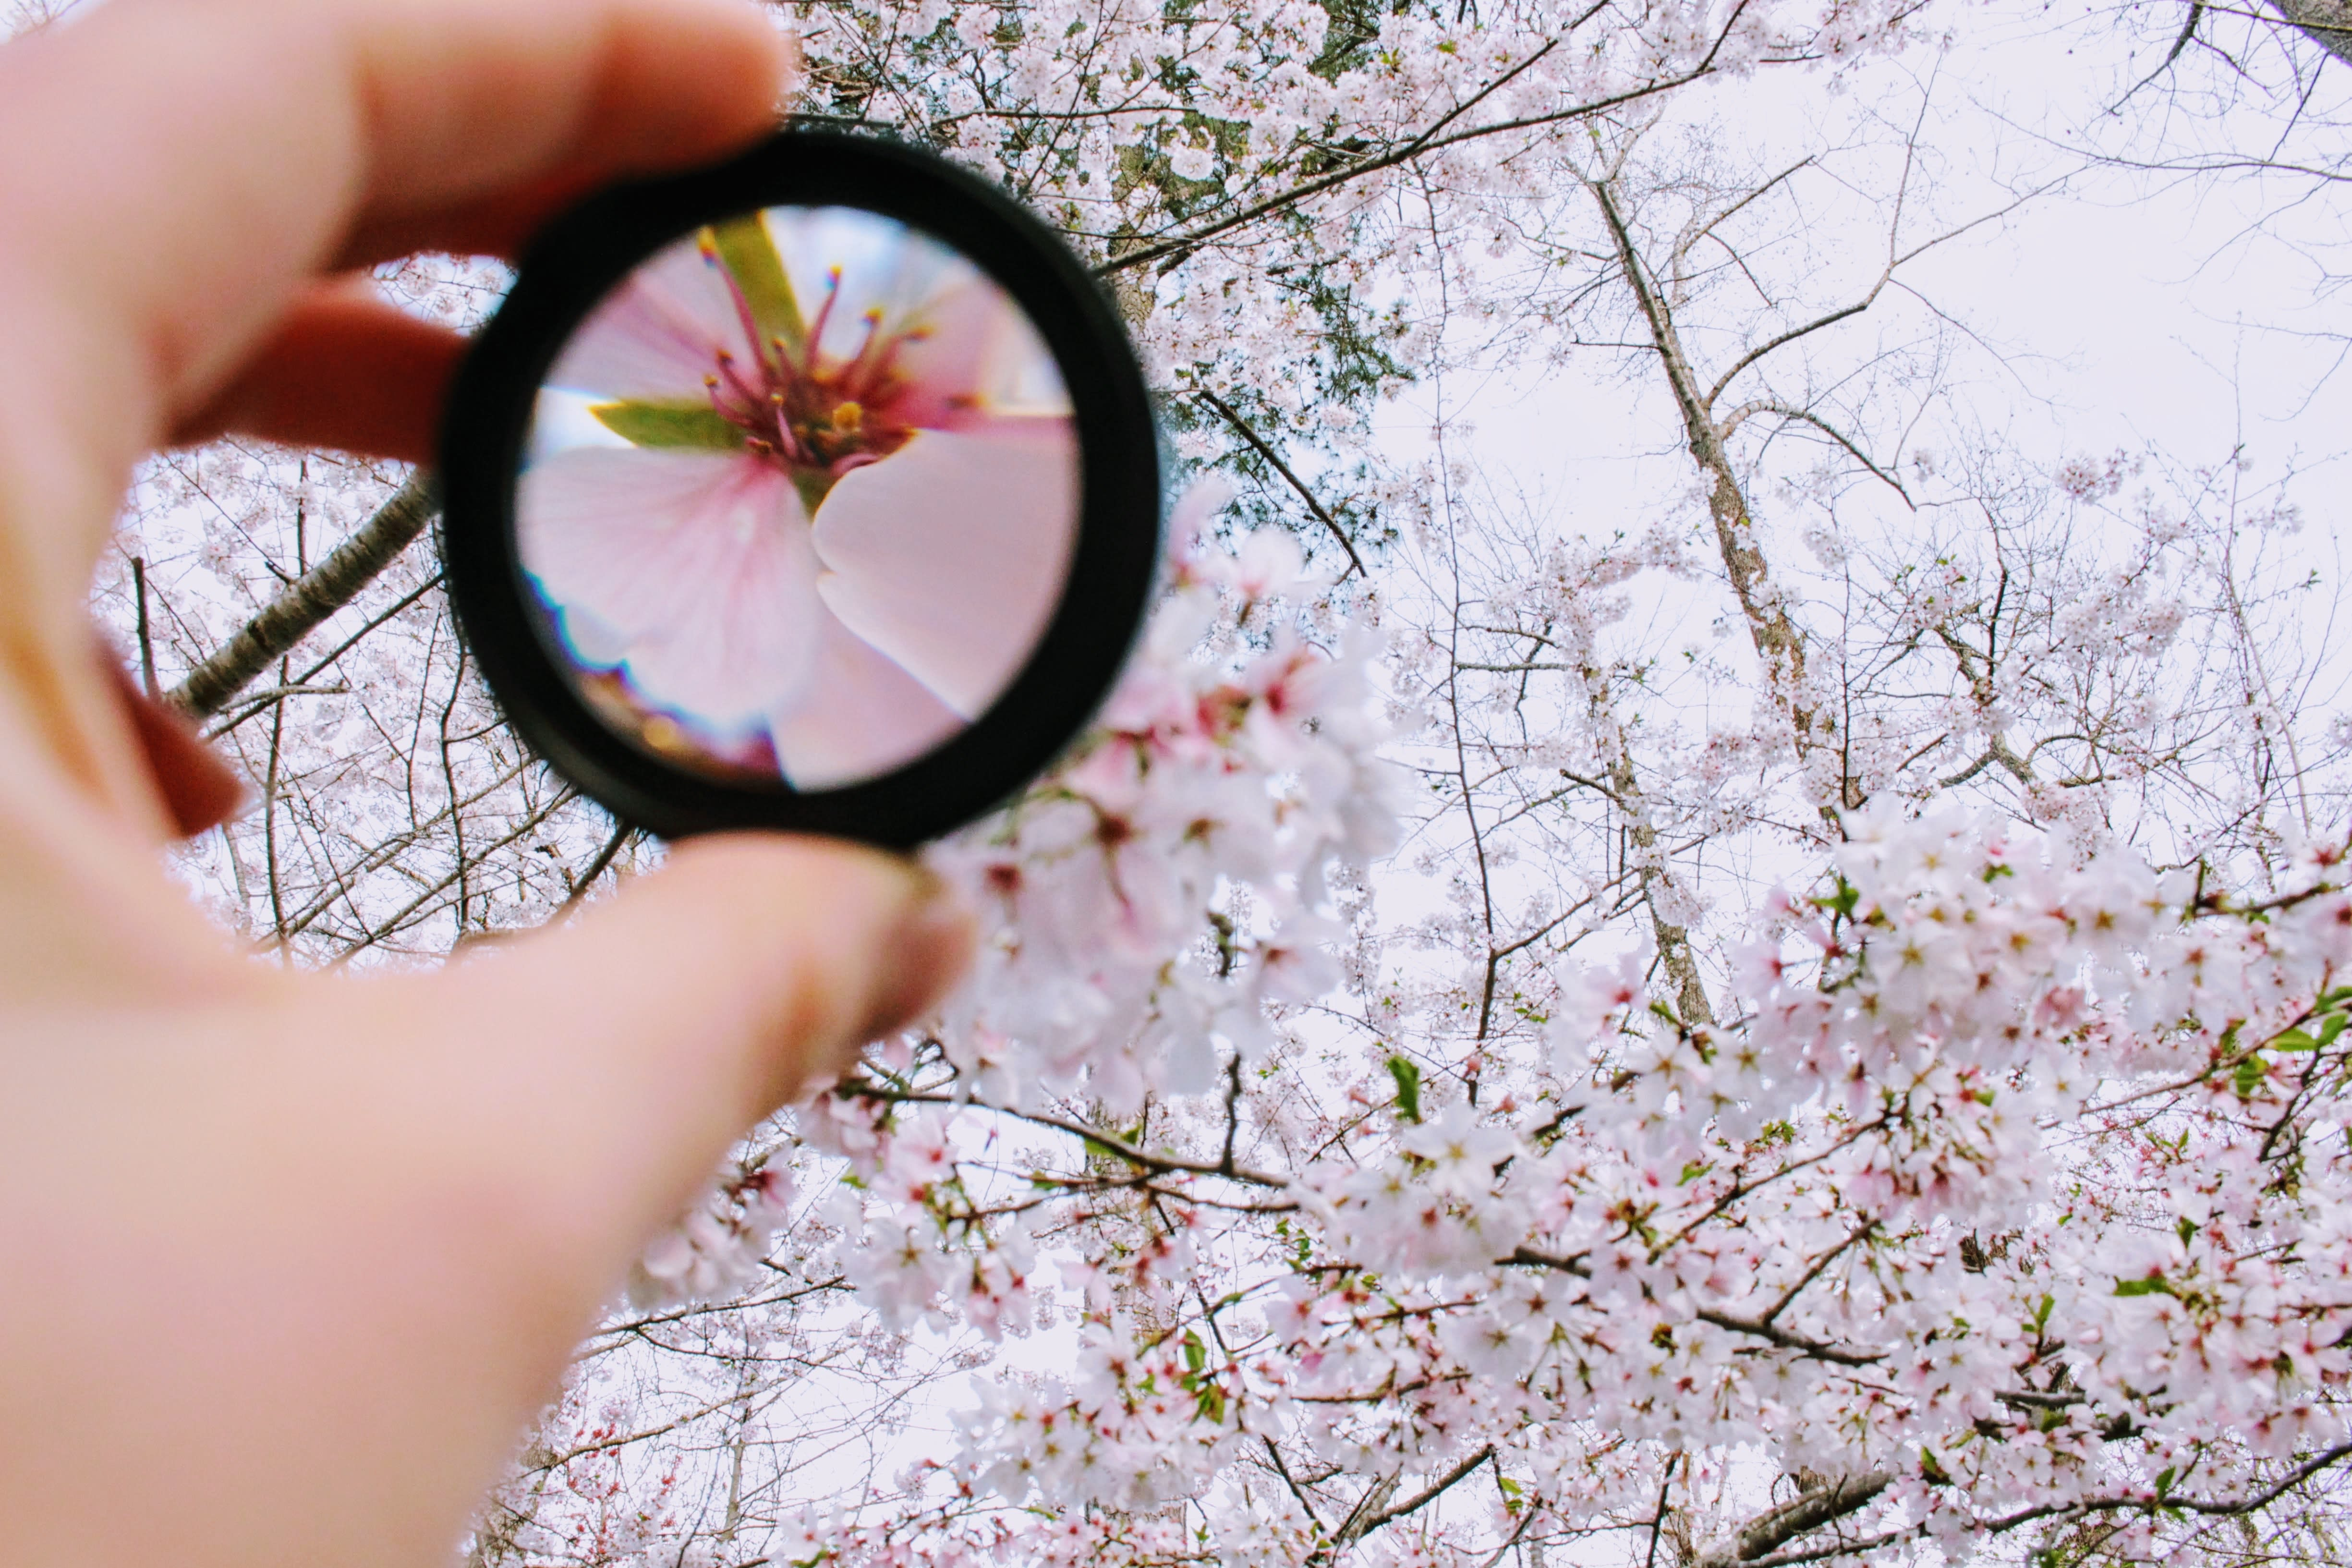 Magnifying glass on a blossom